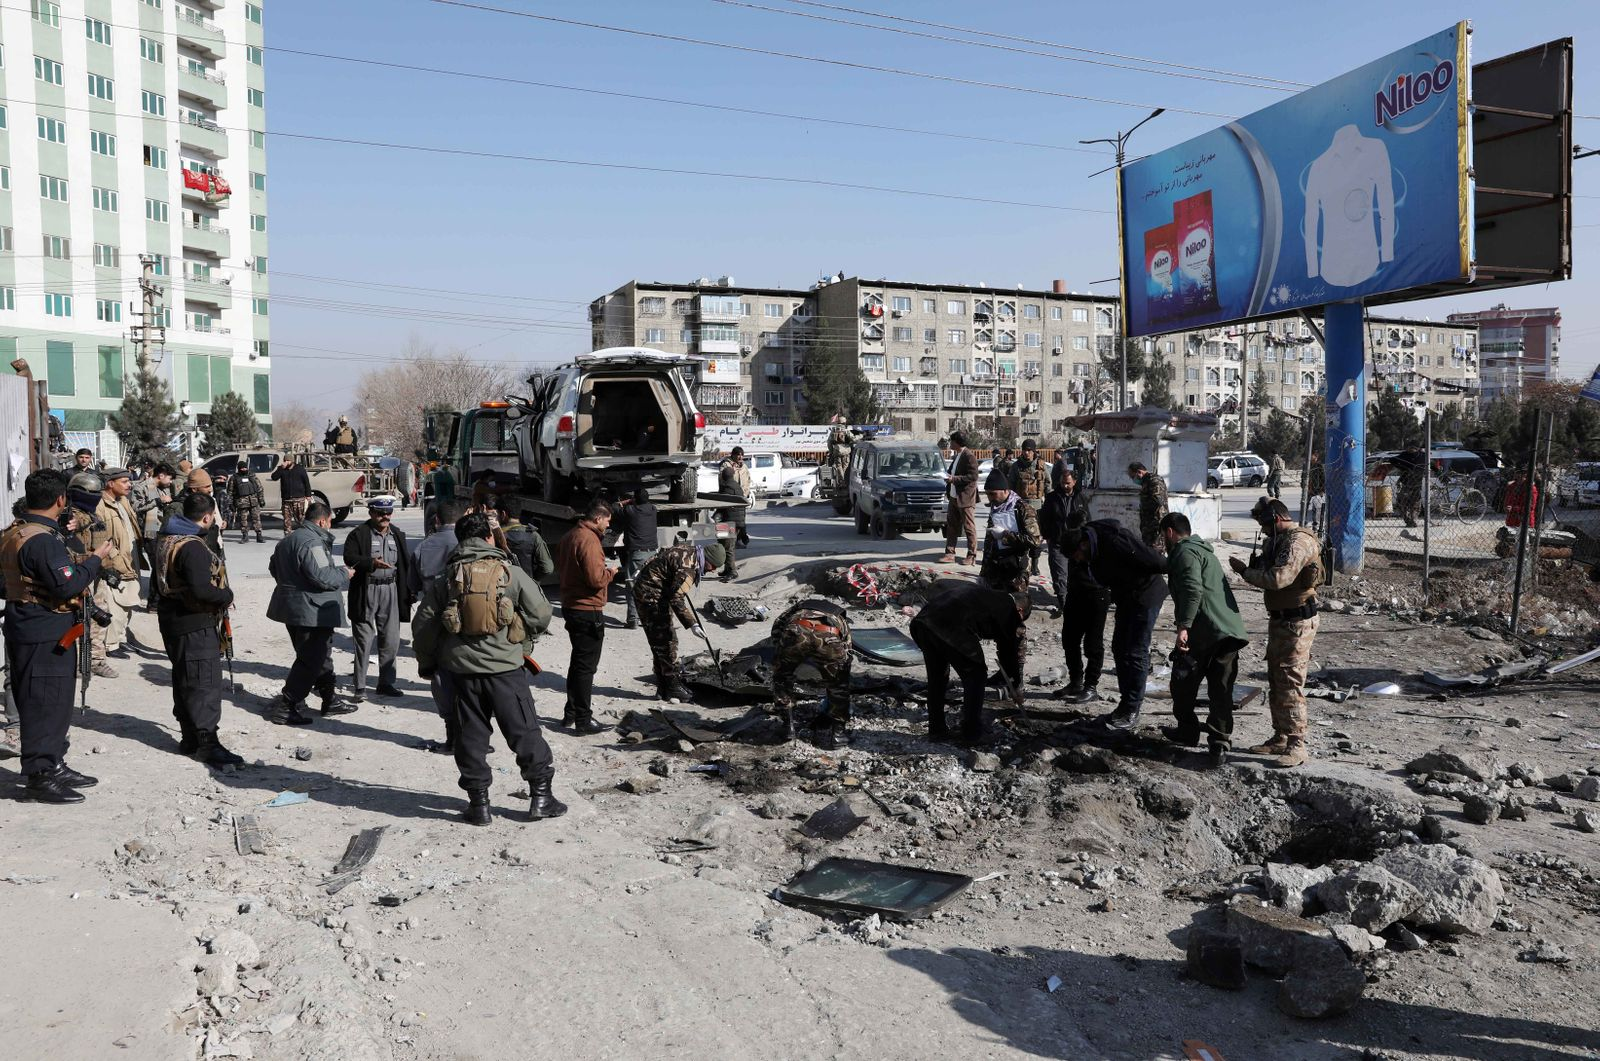 Kabul's deputy governor killed in IED explosion in Kabul, Afghanistan - 15 Dec 2020